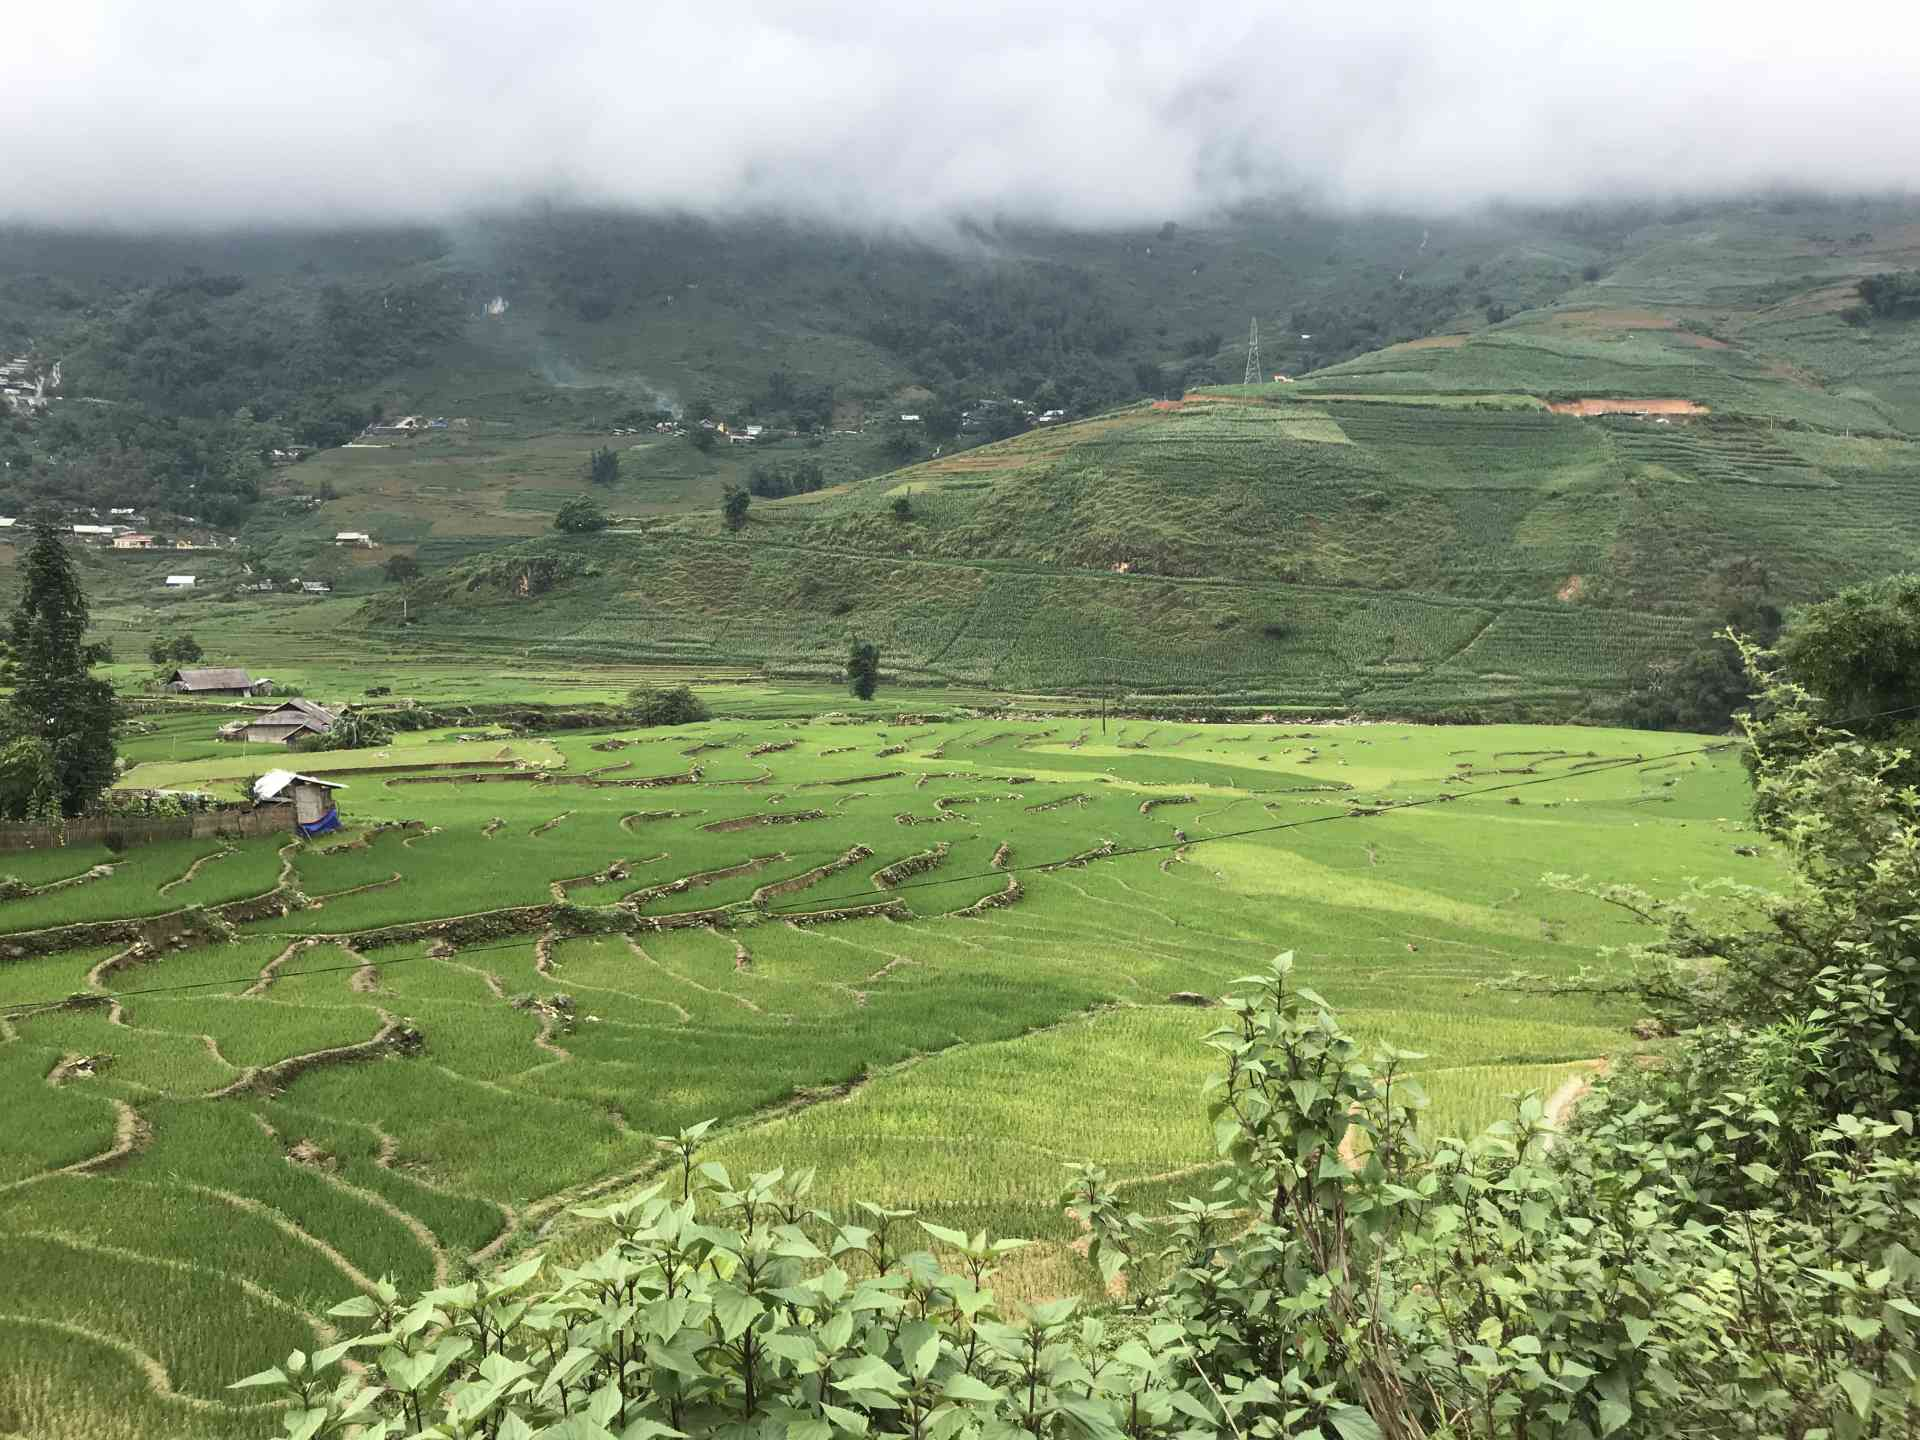 Rice Paddies in Sapa, Vietnam by Zoe Francis